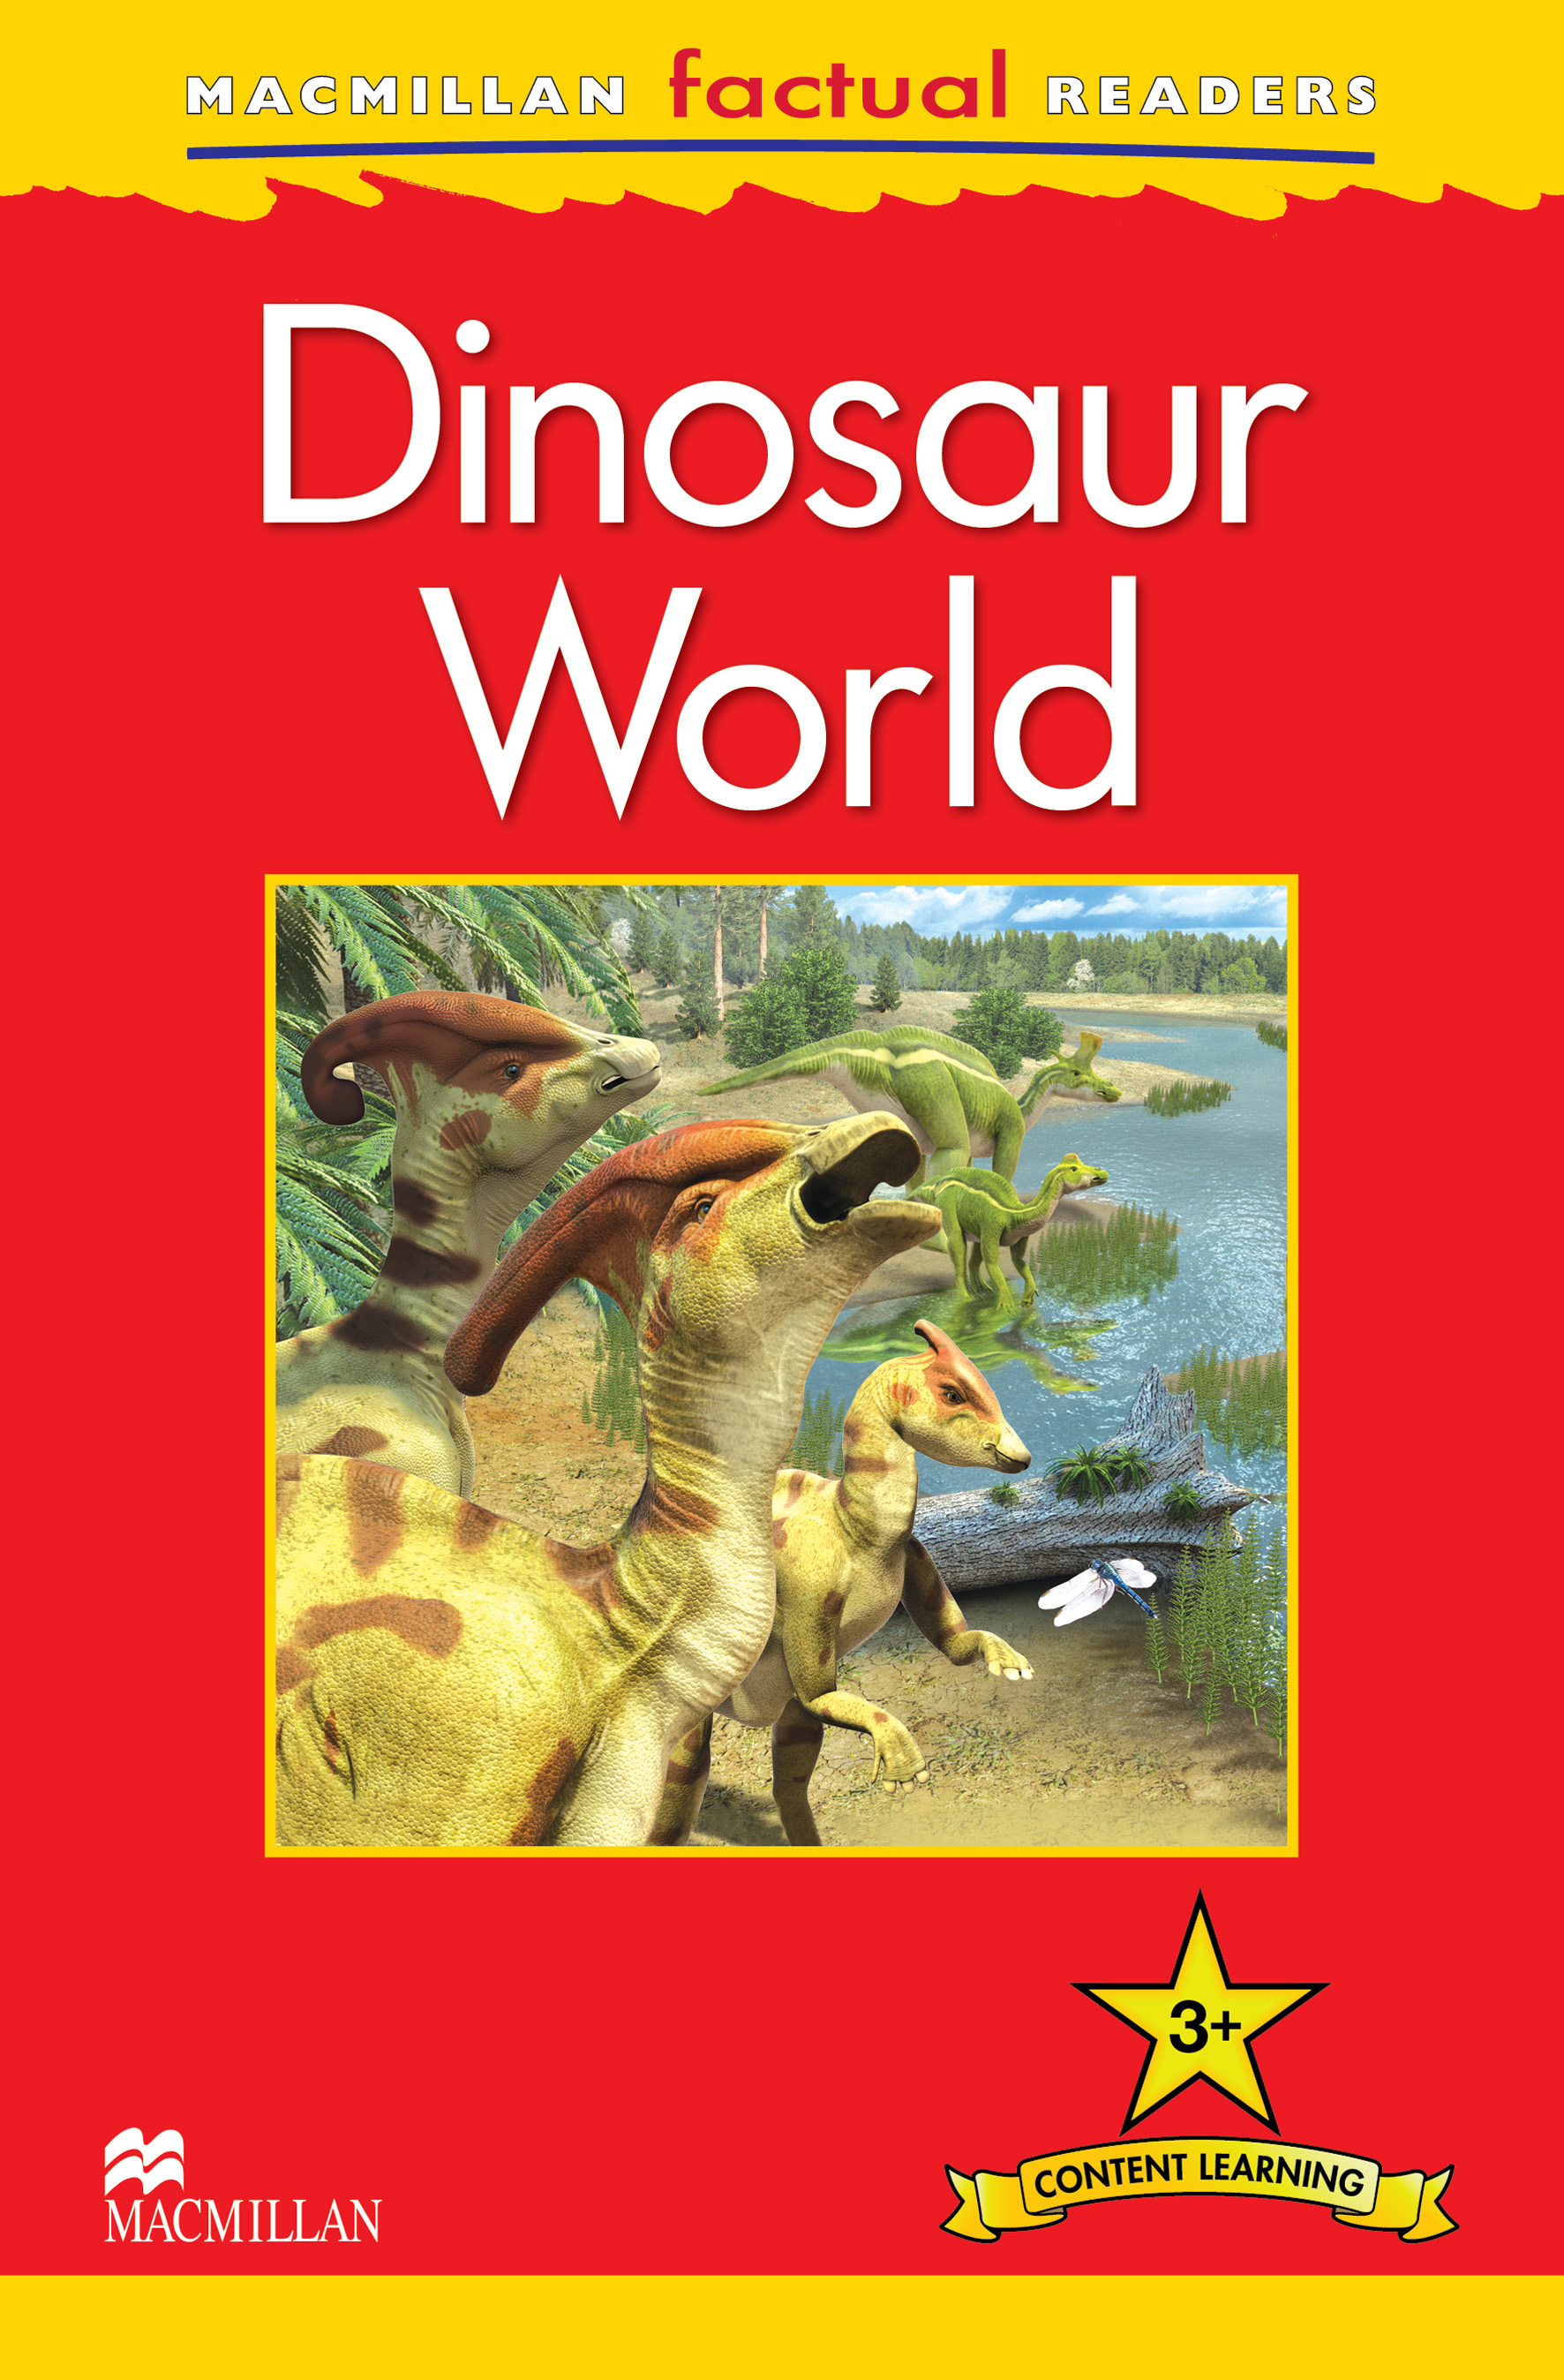 Macmillan Factual Readers: Dinosaur World